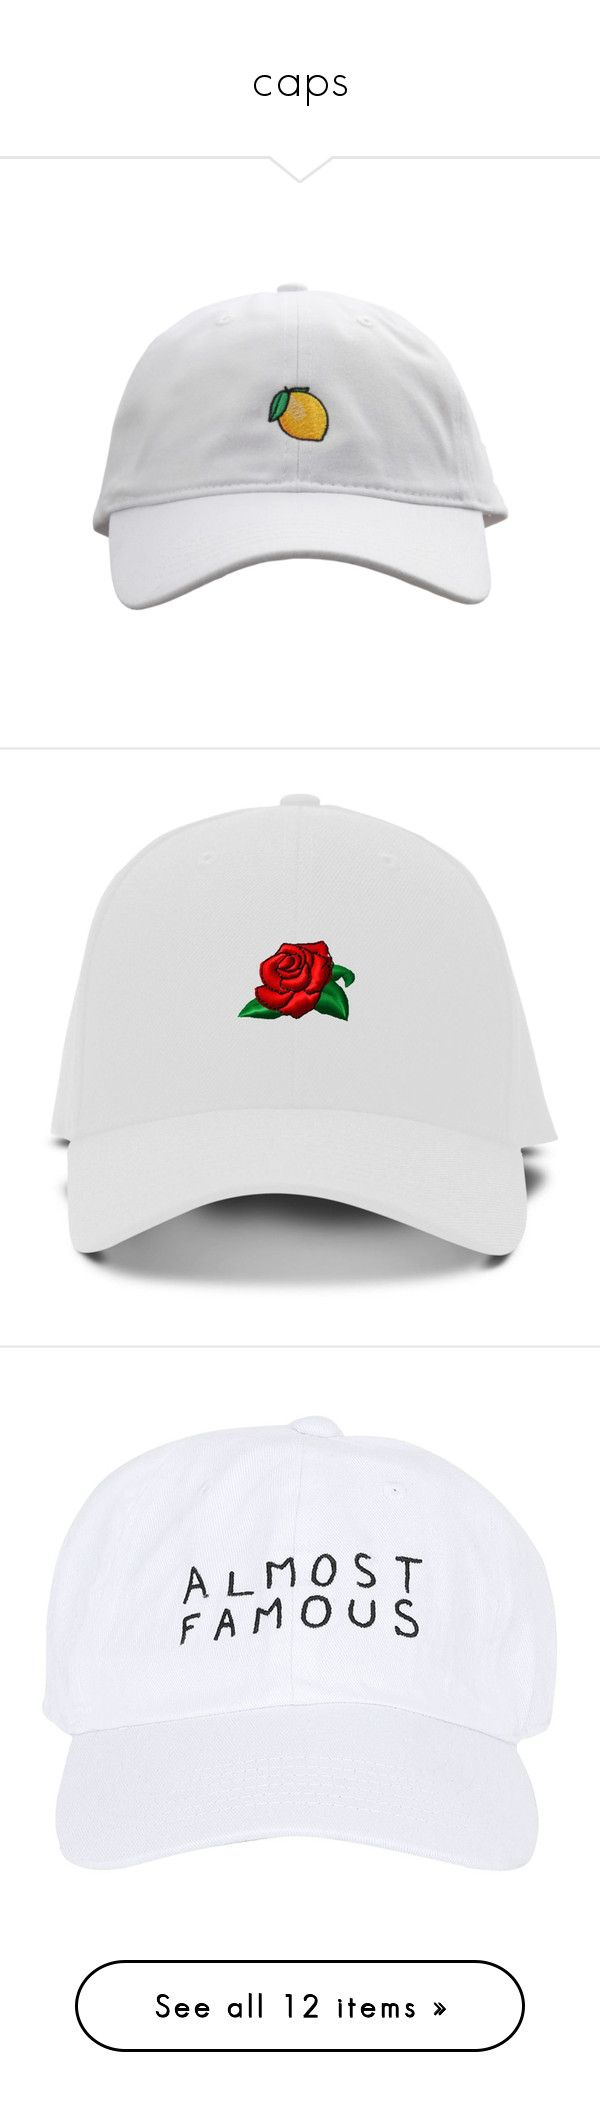 """""""caps"""" by ouchm4rvel ❤ liked on Polyvore featuring accessories, hats, caps, accessories - hats, snapback hats, snap back hats, snap back cap, embroidery caps, green brim hats and baseball hat"""